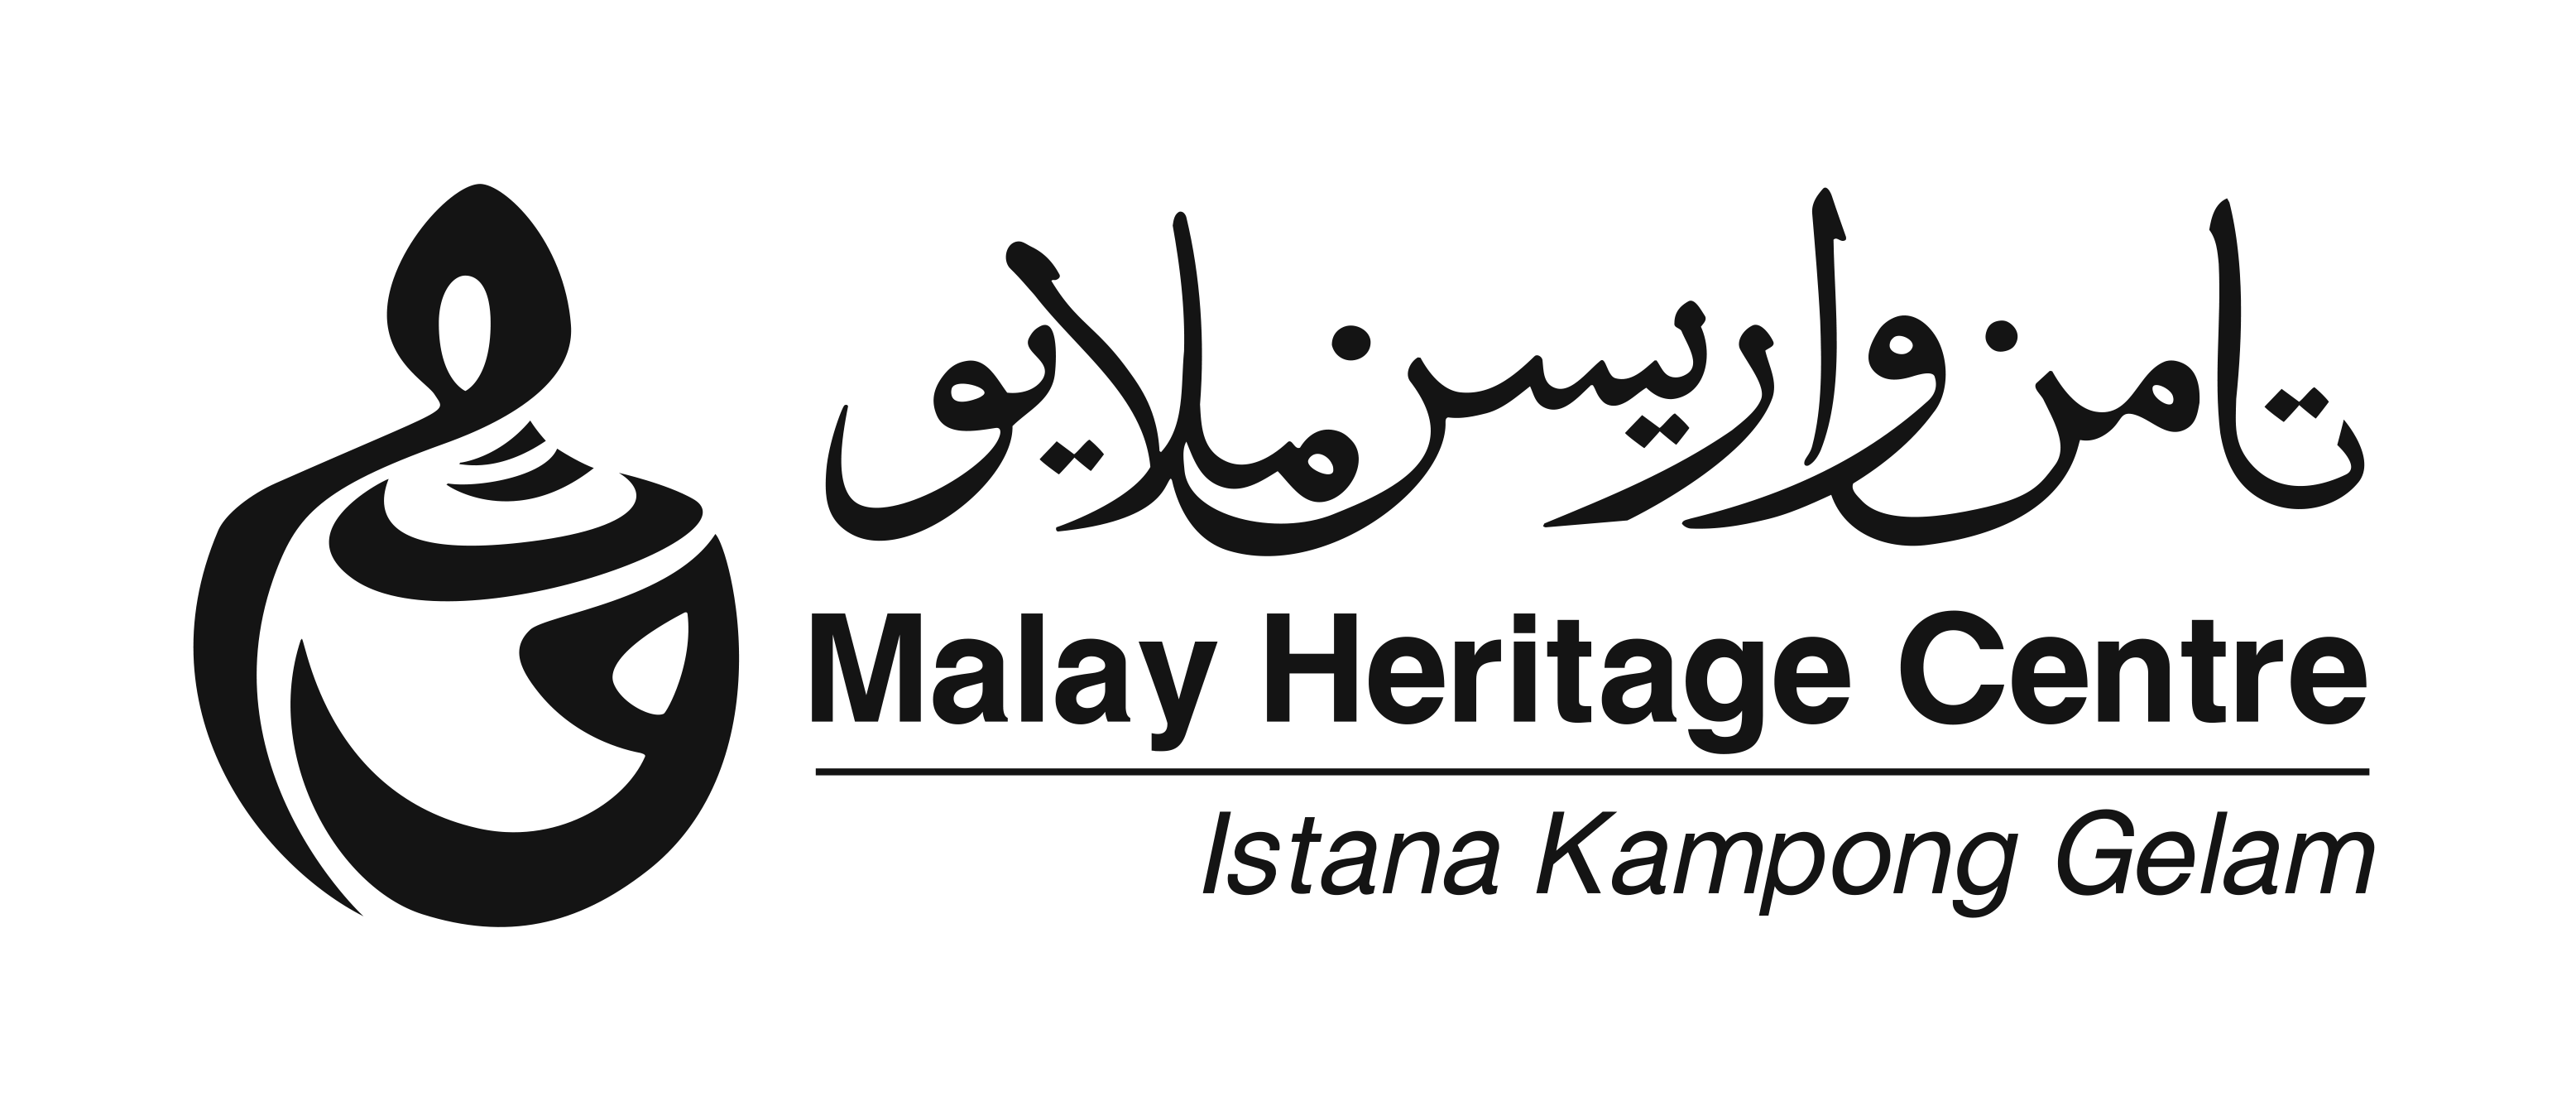 Malay Heritage Centre